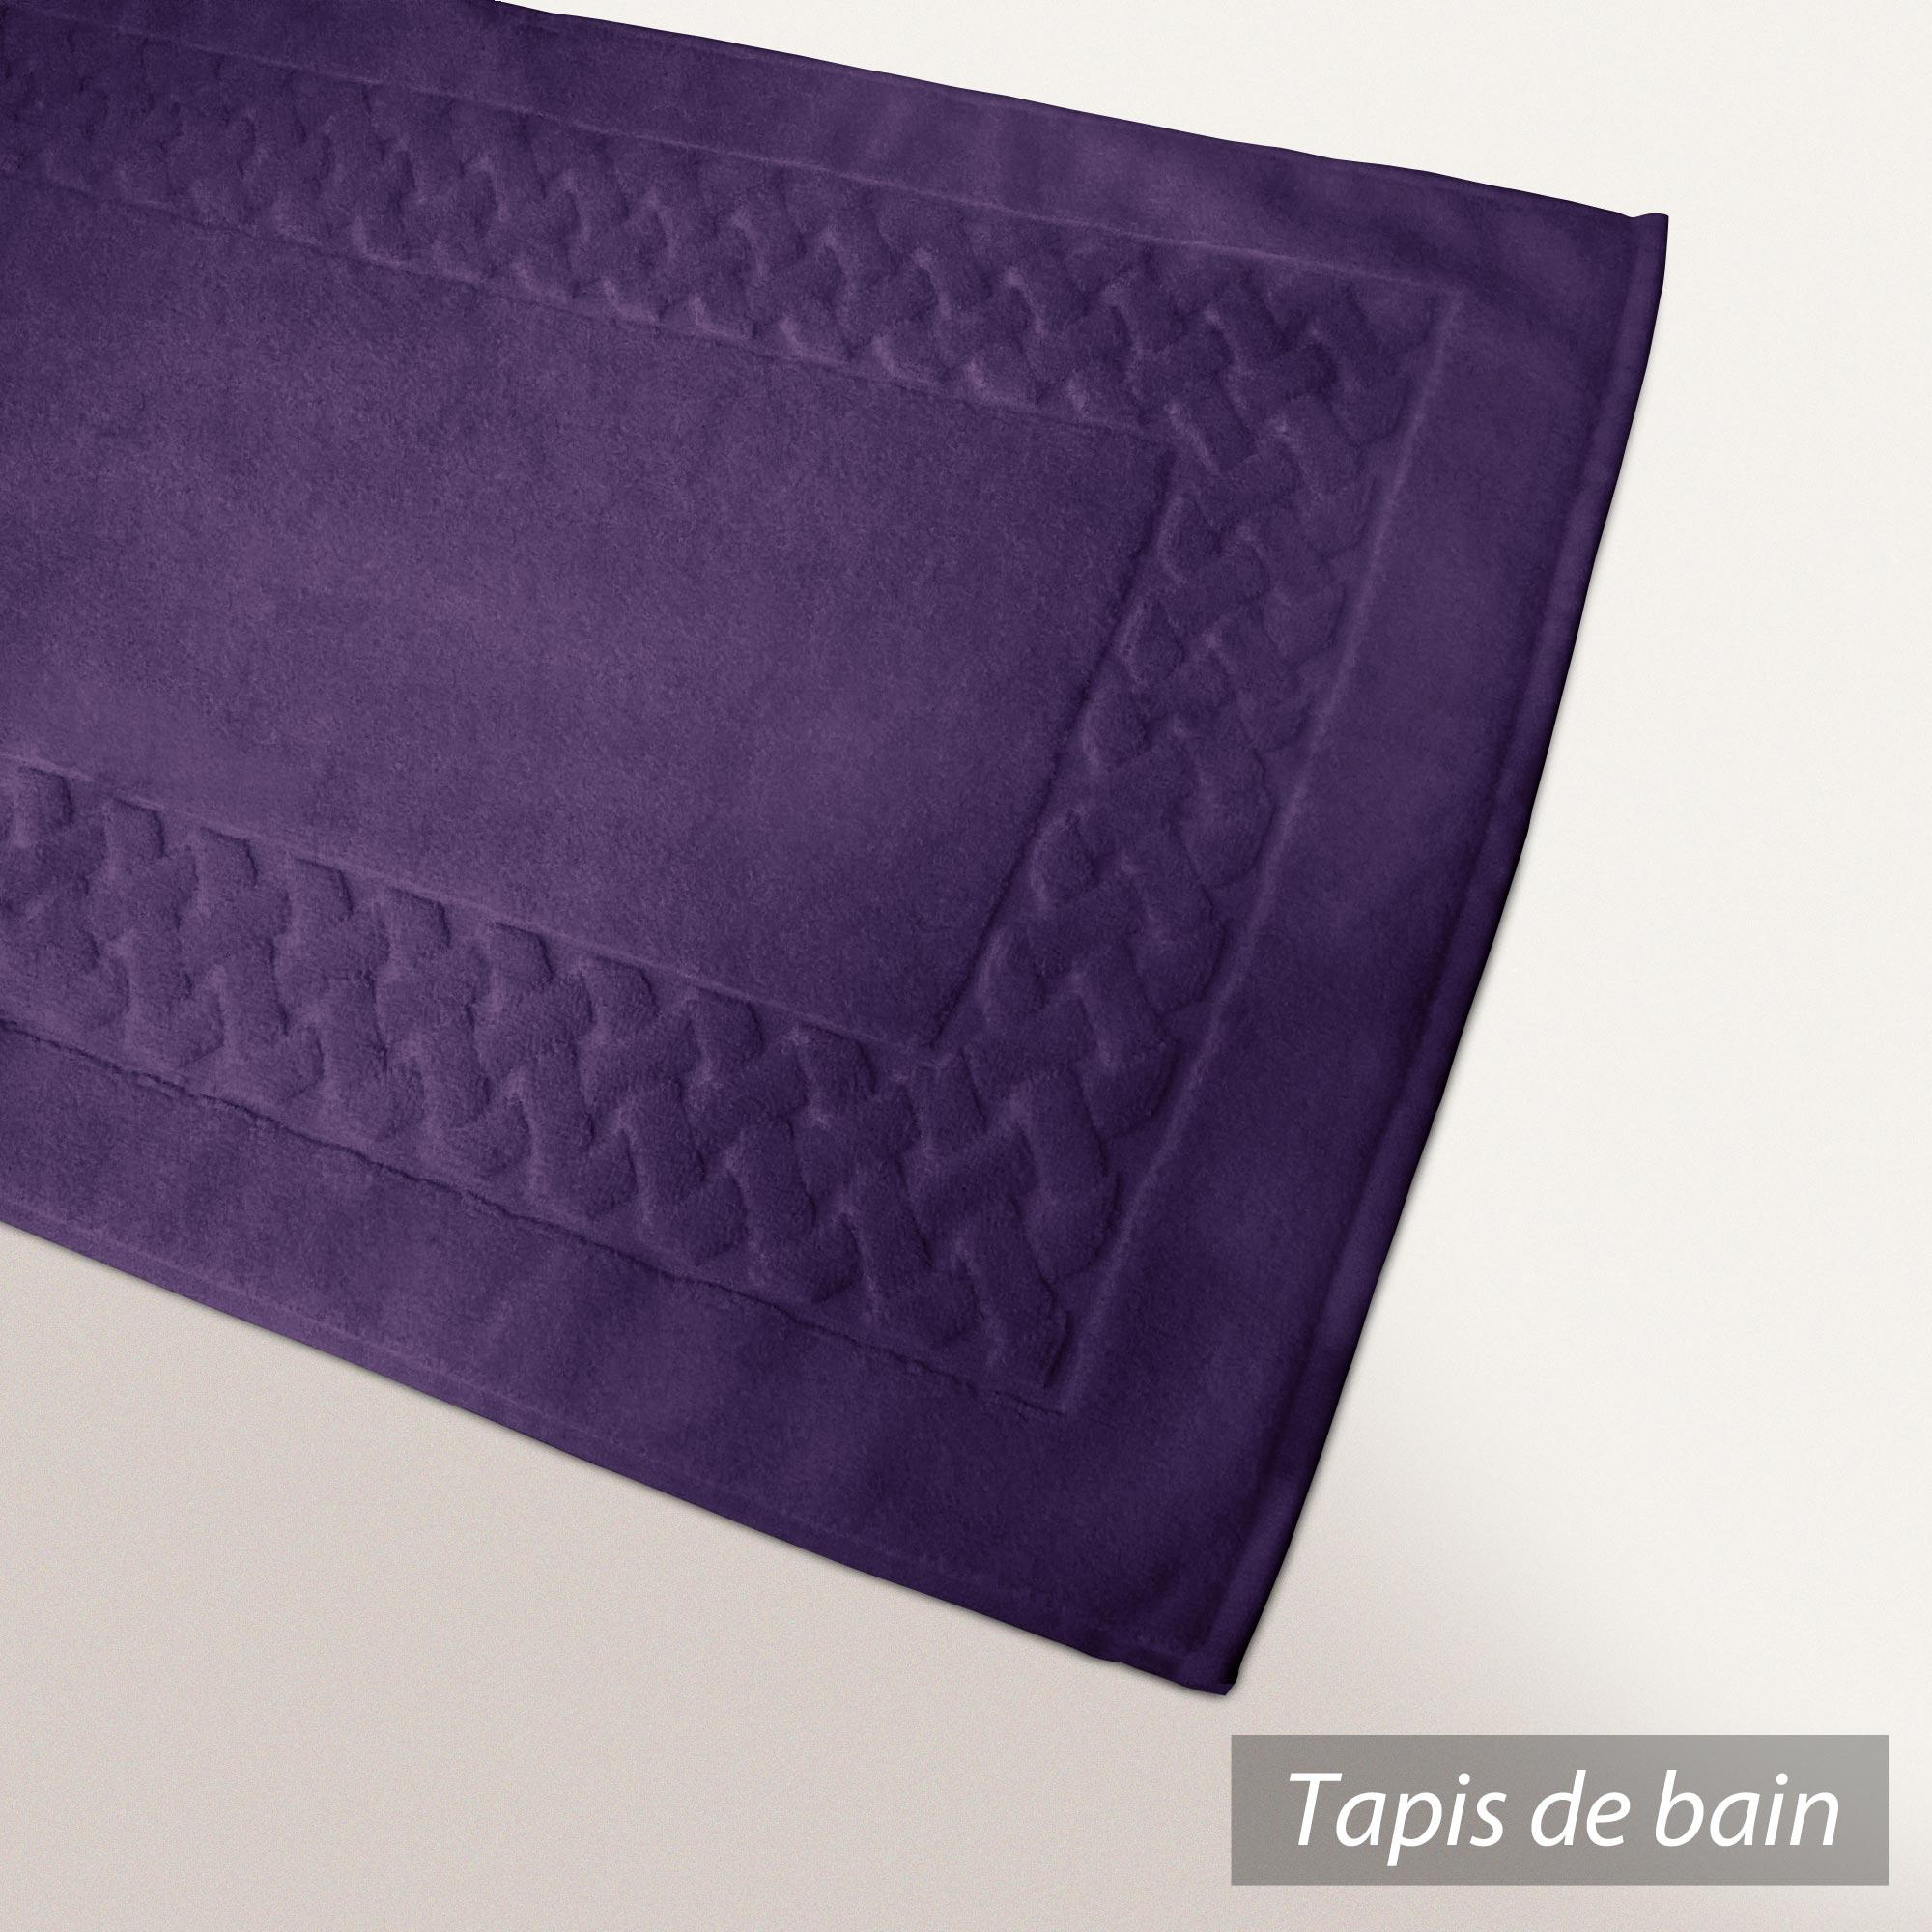 tapis de bain 50x80 coton uni royal cresent violet prune. Black Bedroom Furniture Sets. Home Design Ideas